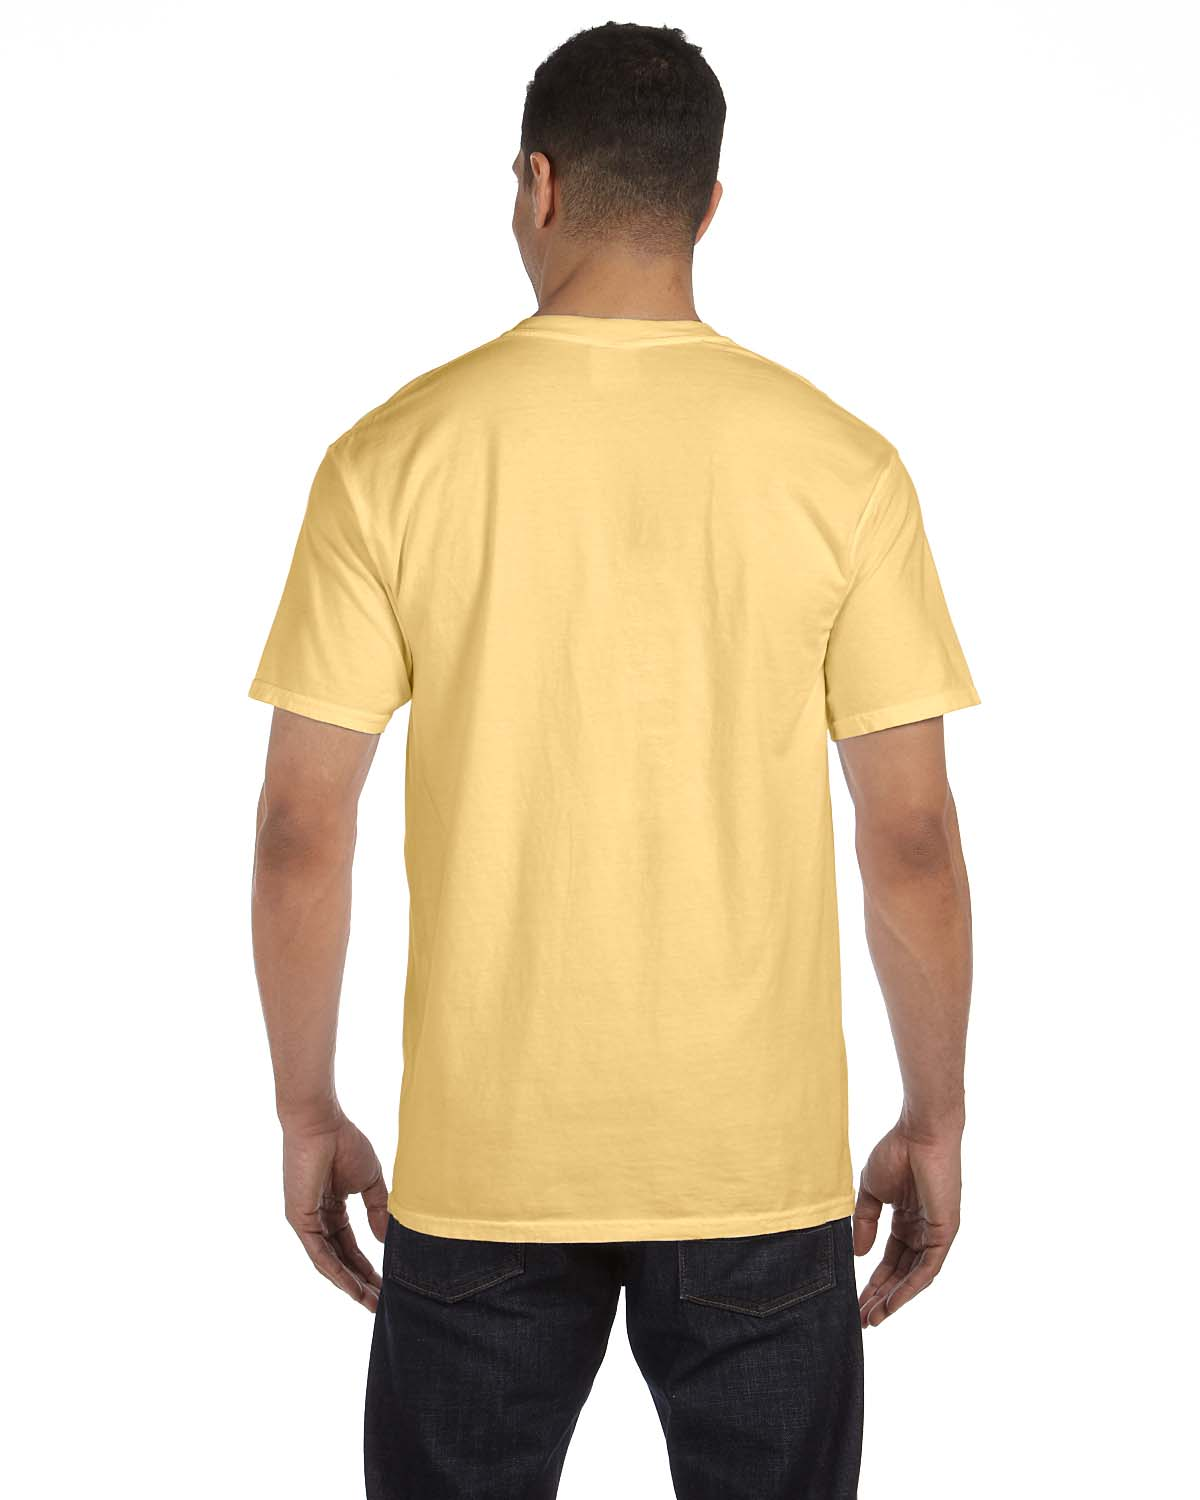 Comfort colors 6 1 oz garment dyed pocket t shirt s 3xl m for One color t shirt